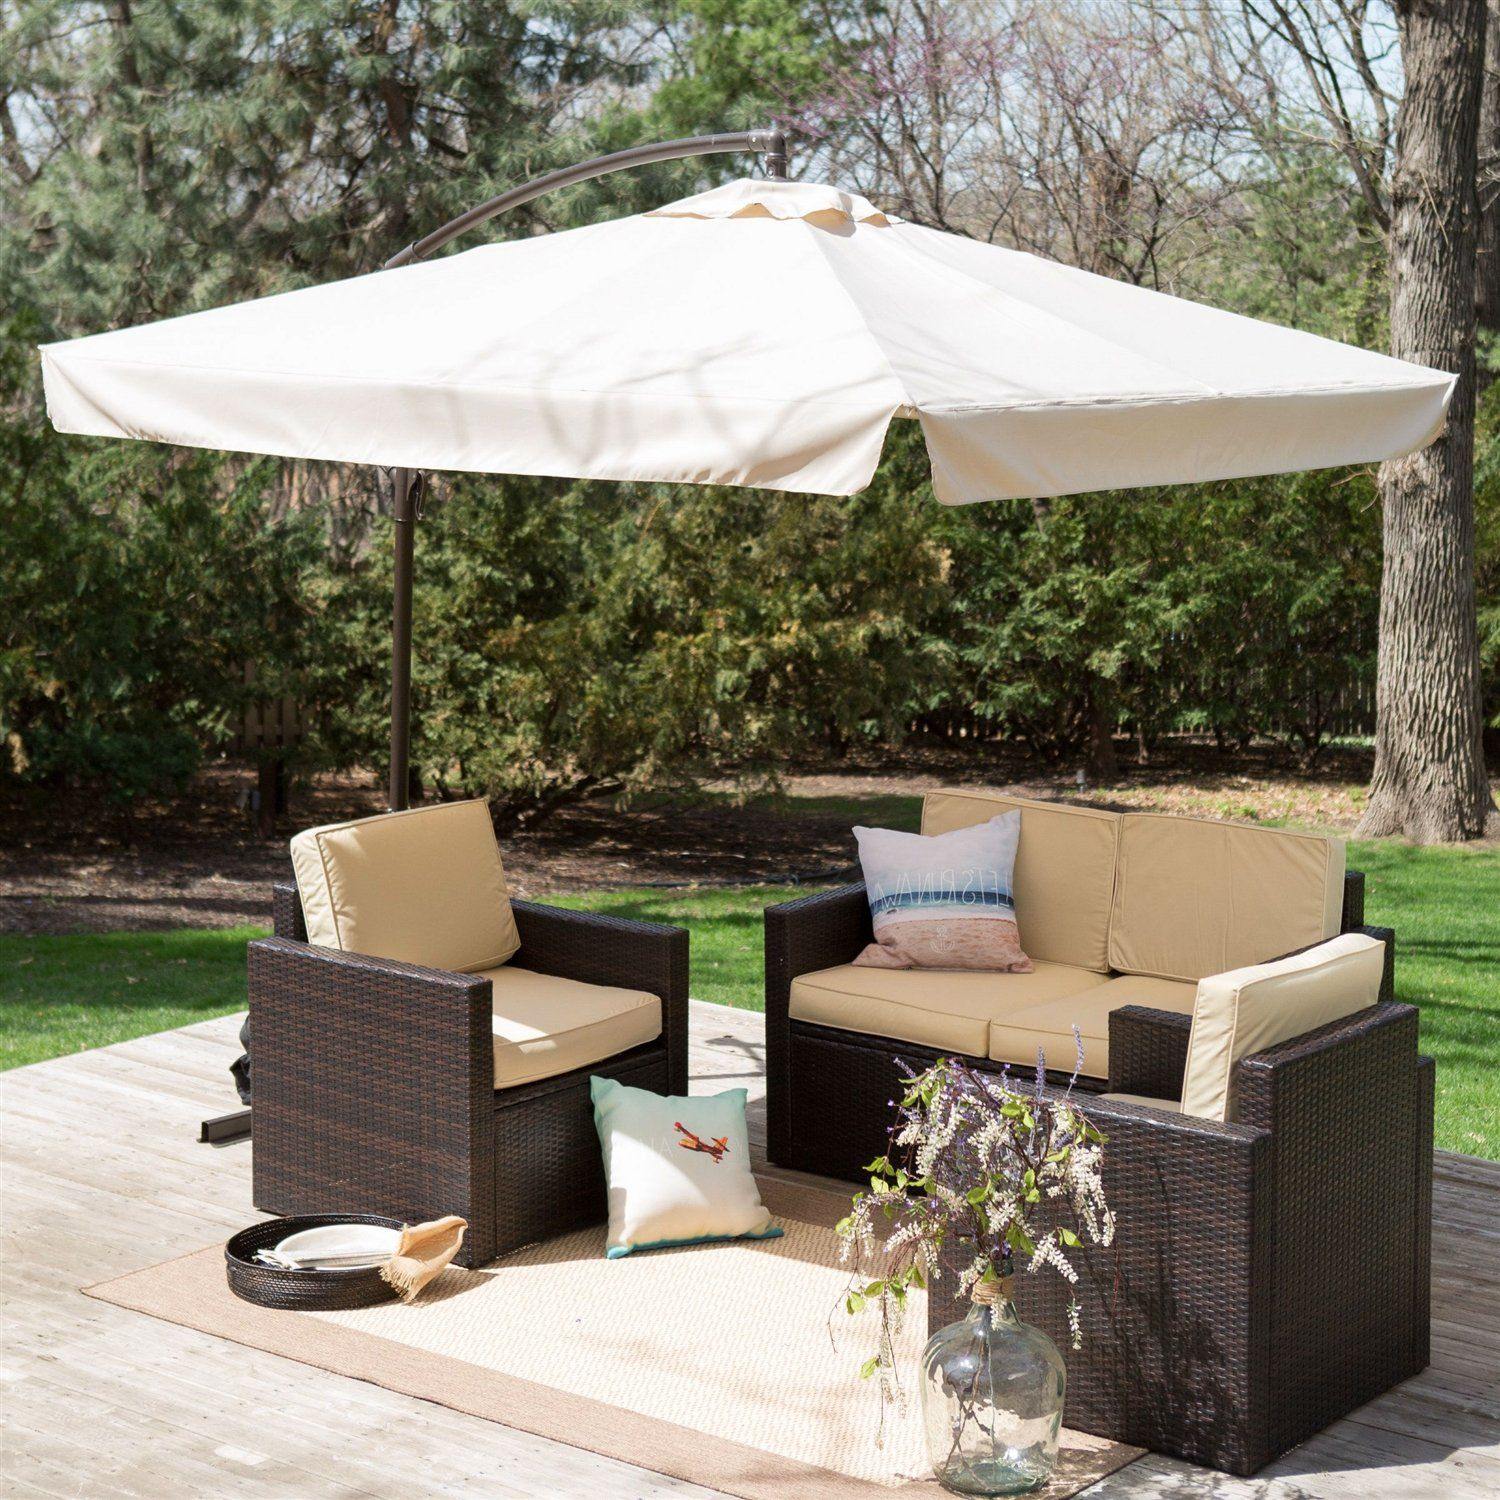 8 Ft Square Offset Patio Umbrella Gazebo With Beige Canopy Shade